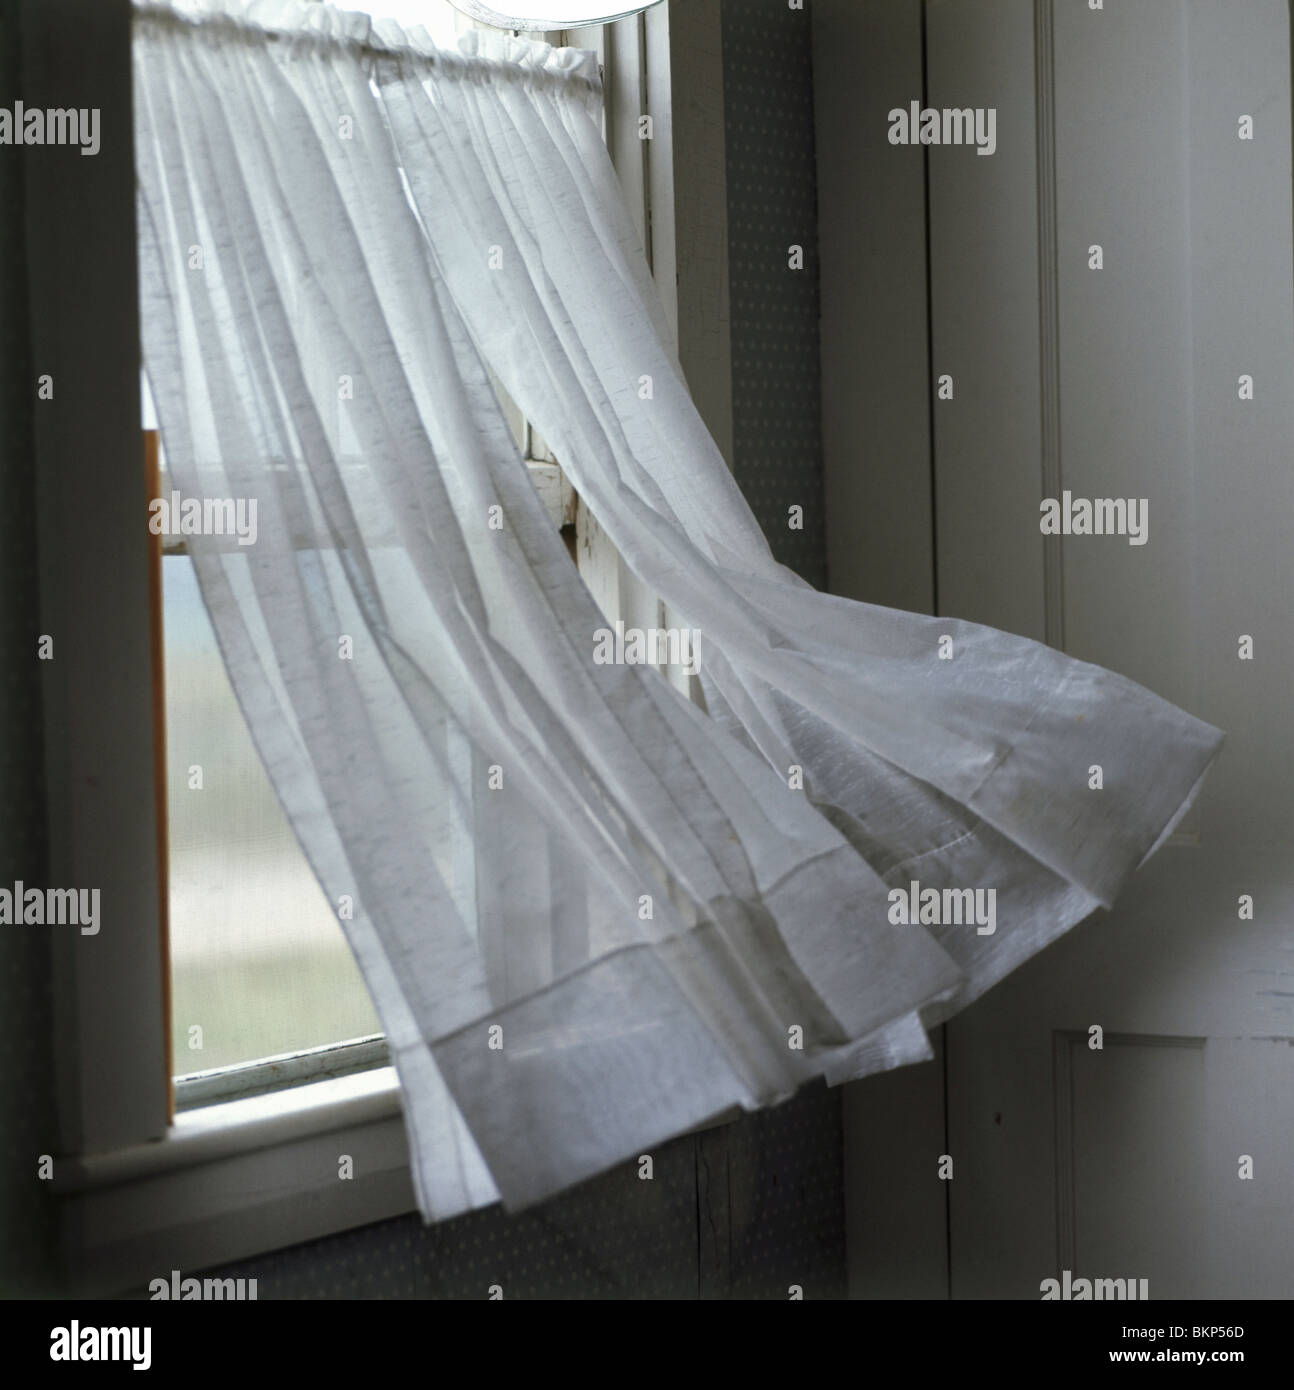 Curtain Blowing Stockfotos & Curtain Blowing Bilder   Alamy